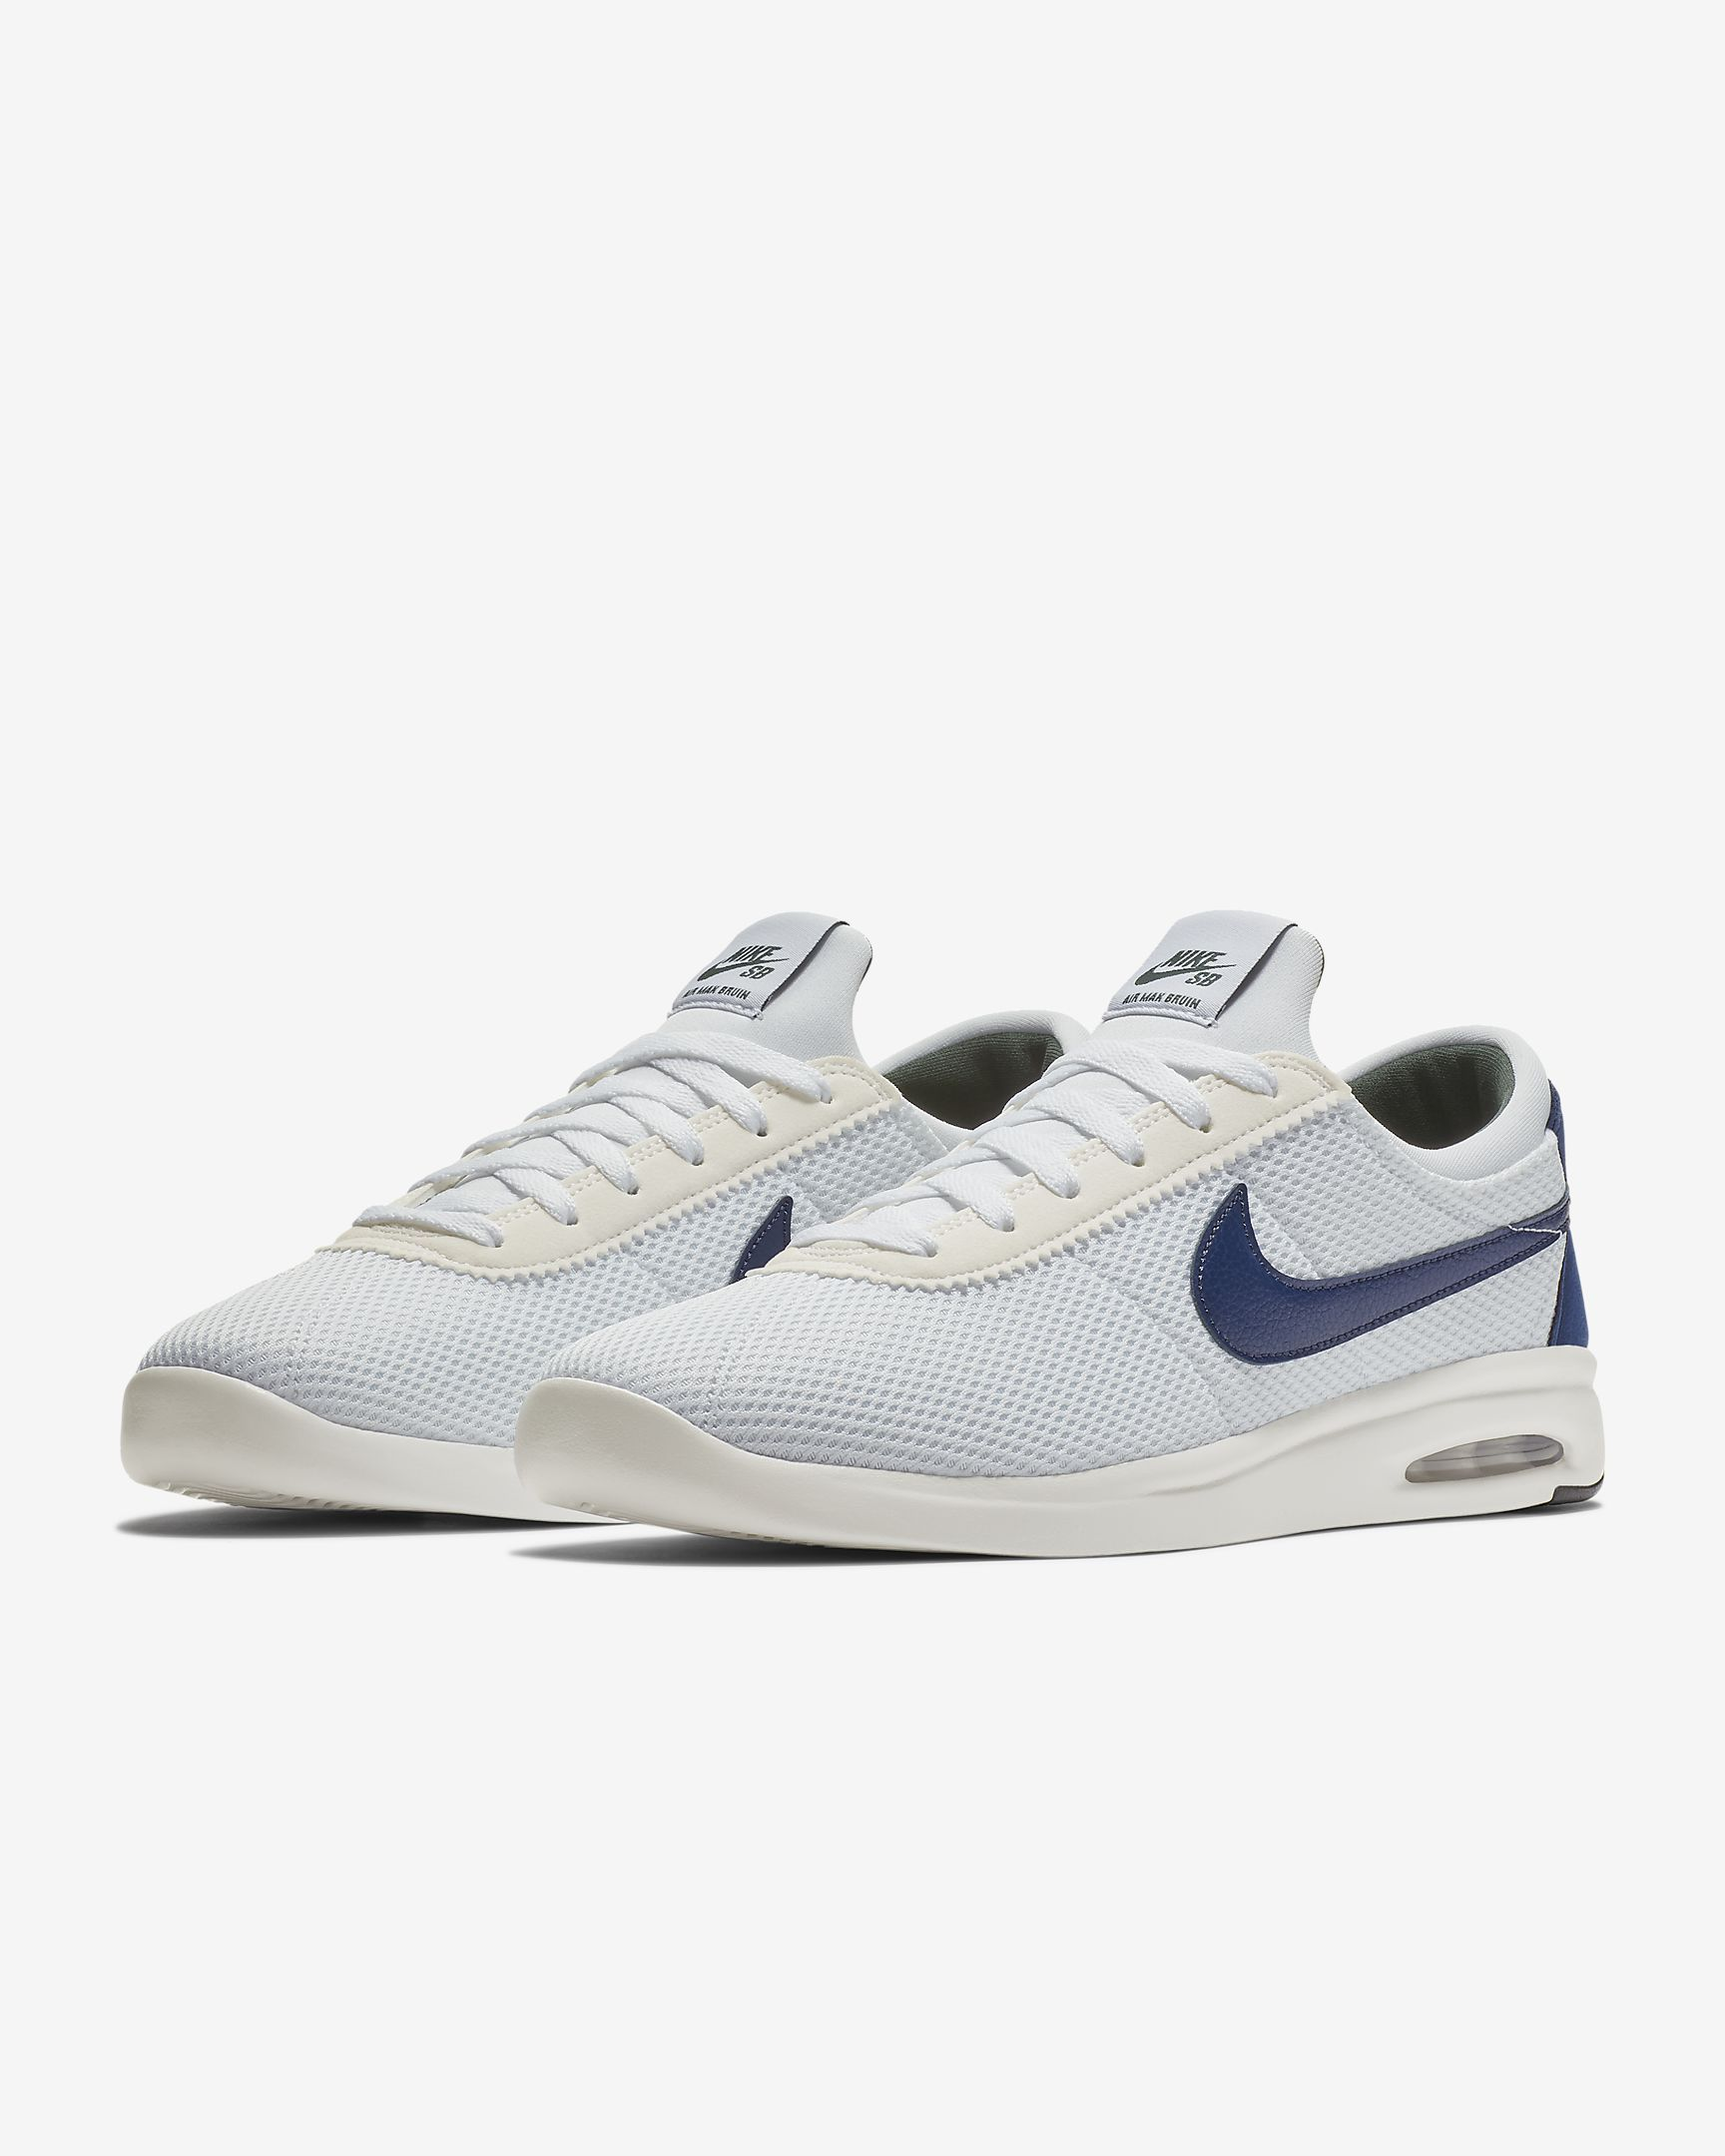 Nike SB Air Max Bruin Vapor Men's Skateboarding Shoe Męskie  Mens